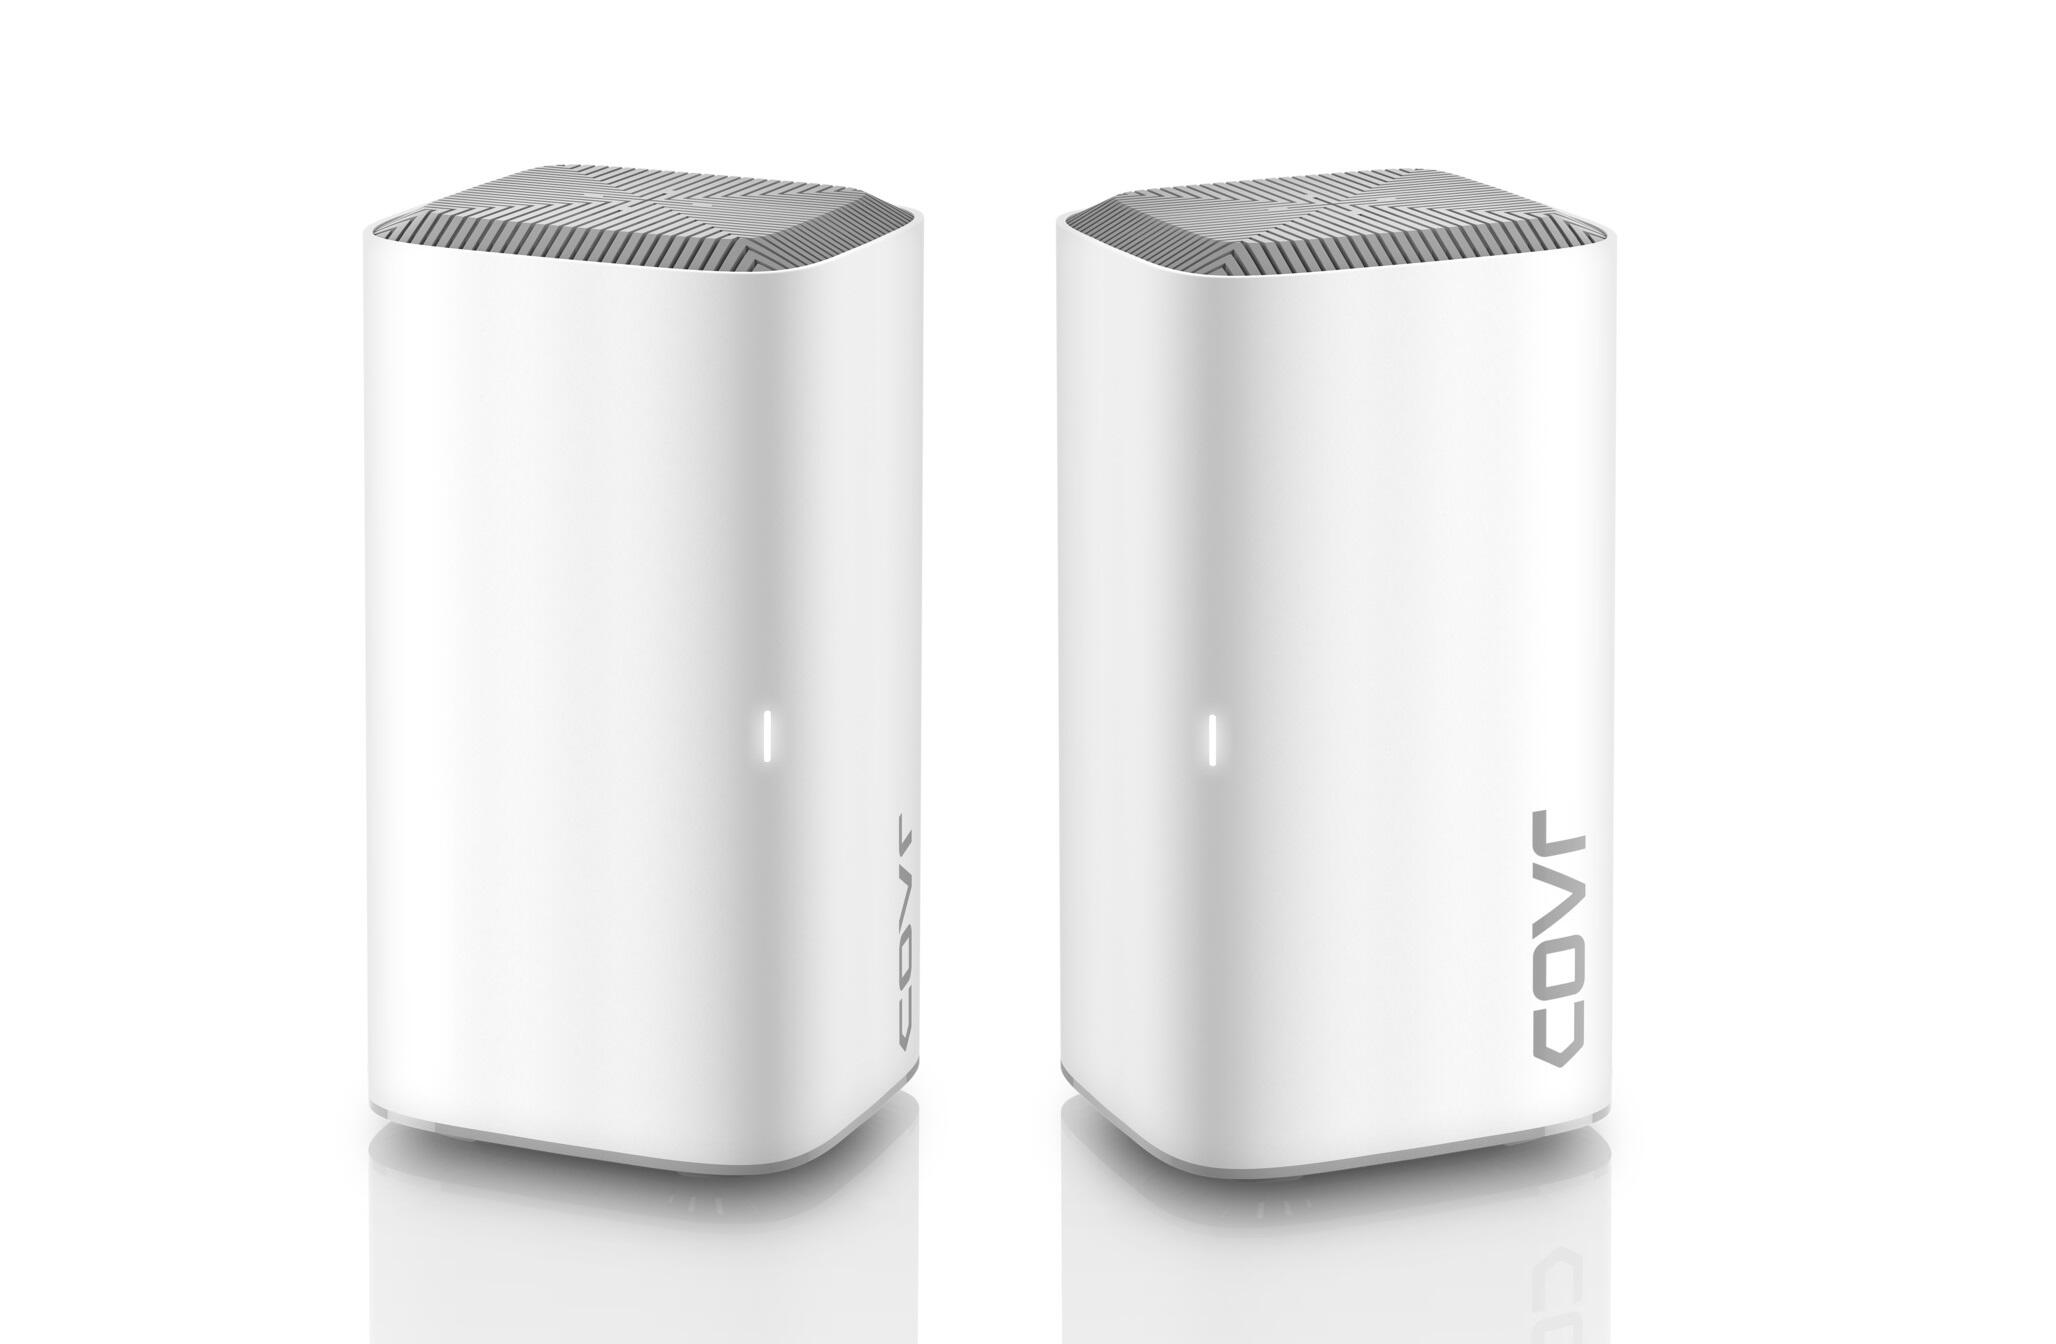 D-Link COVR Wi-Fi 6 mesh router